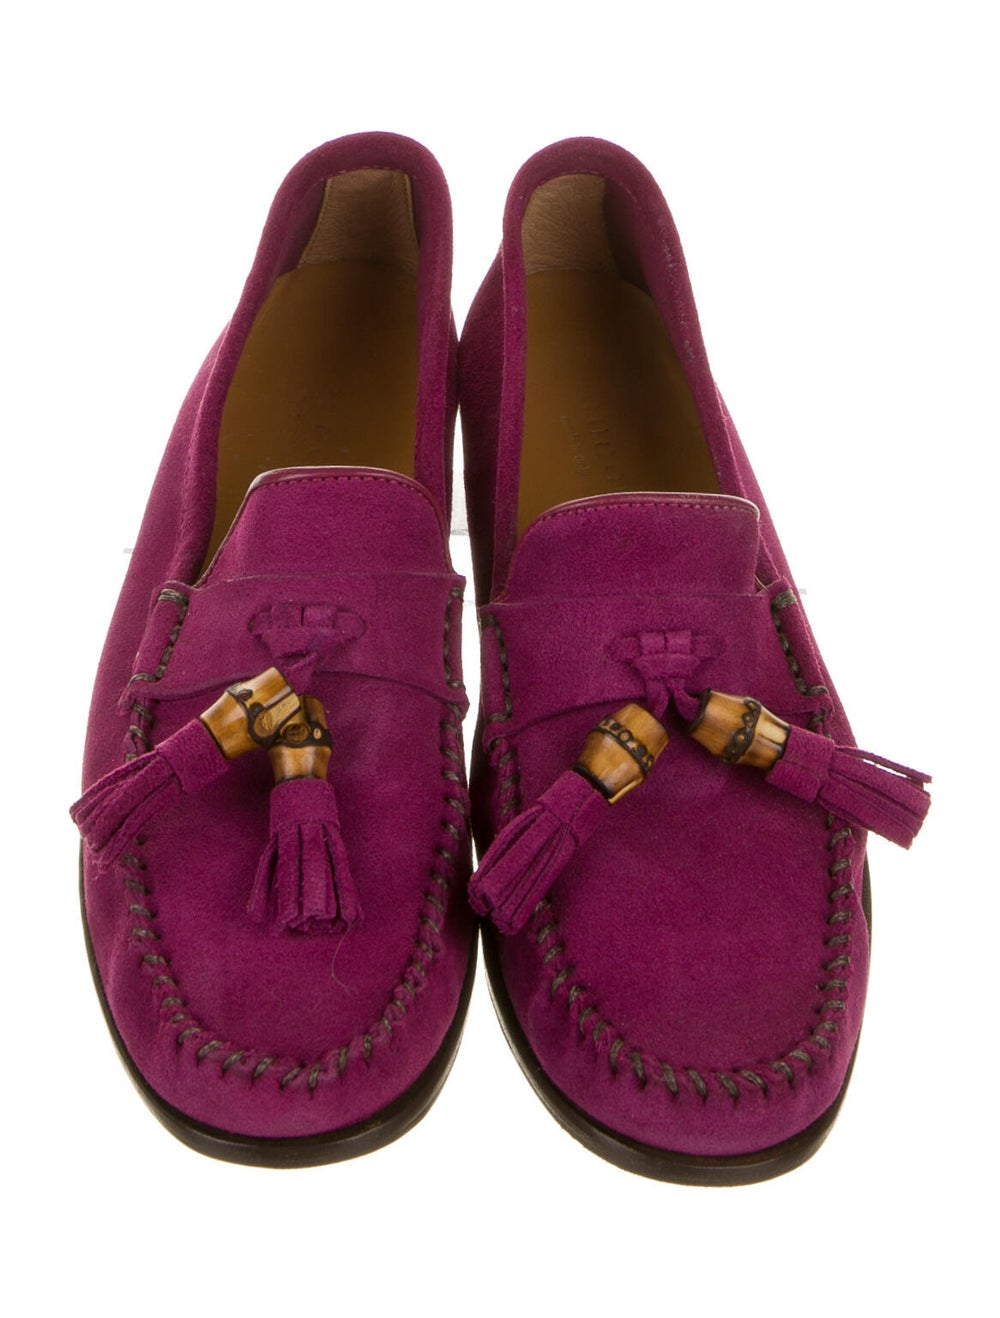 Gucci Suede Loafers Purple - image 3